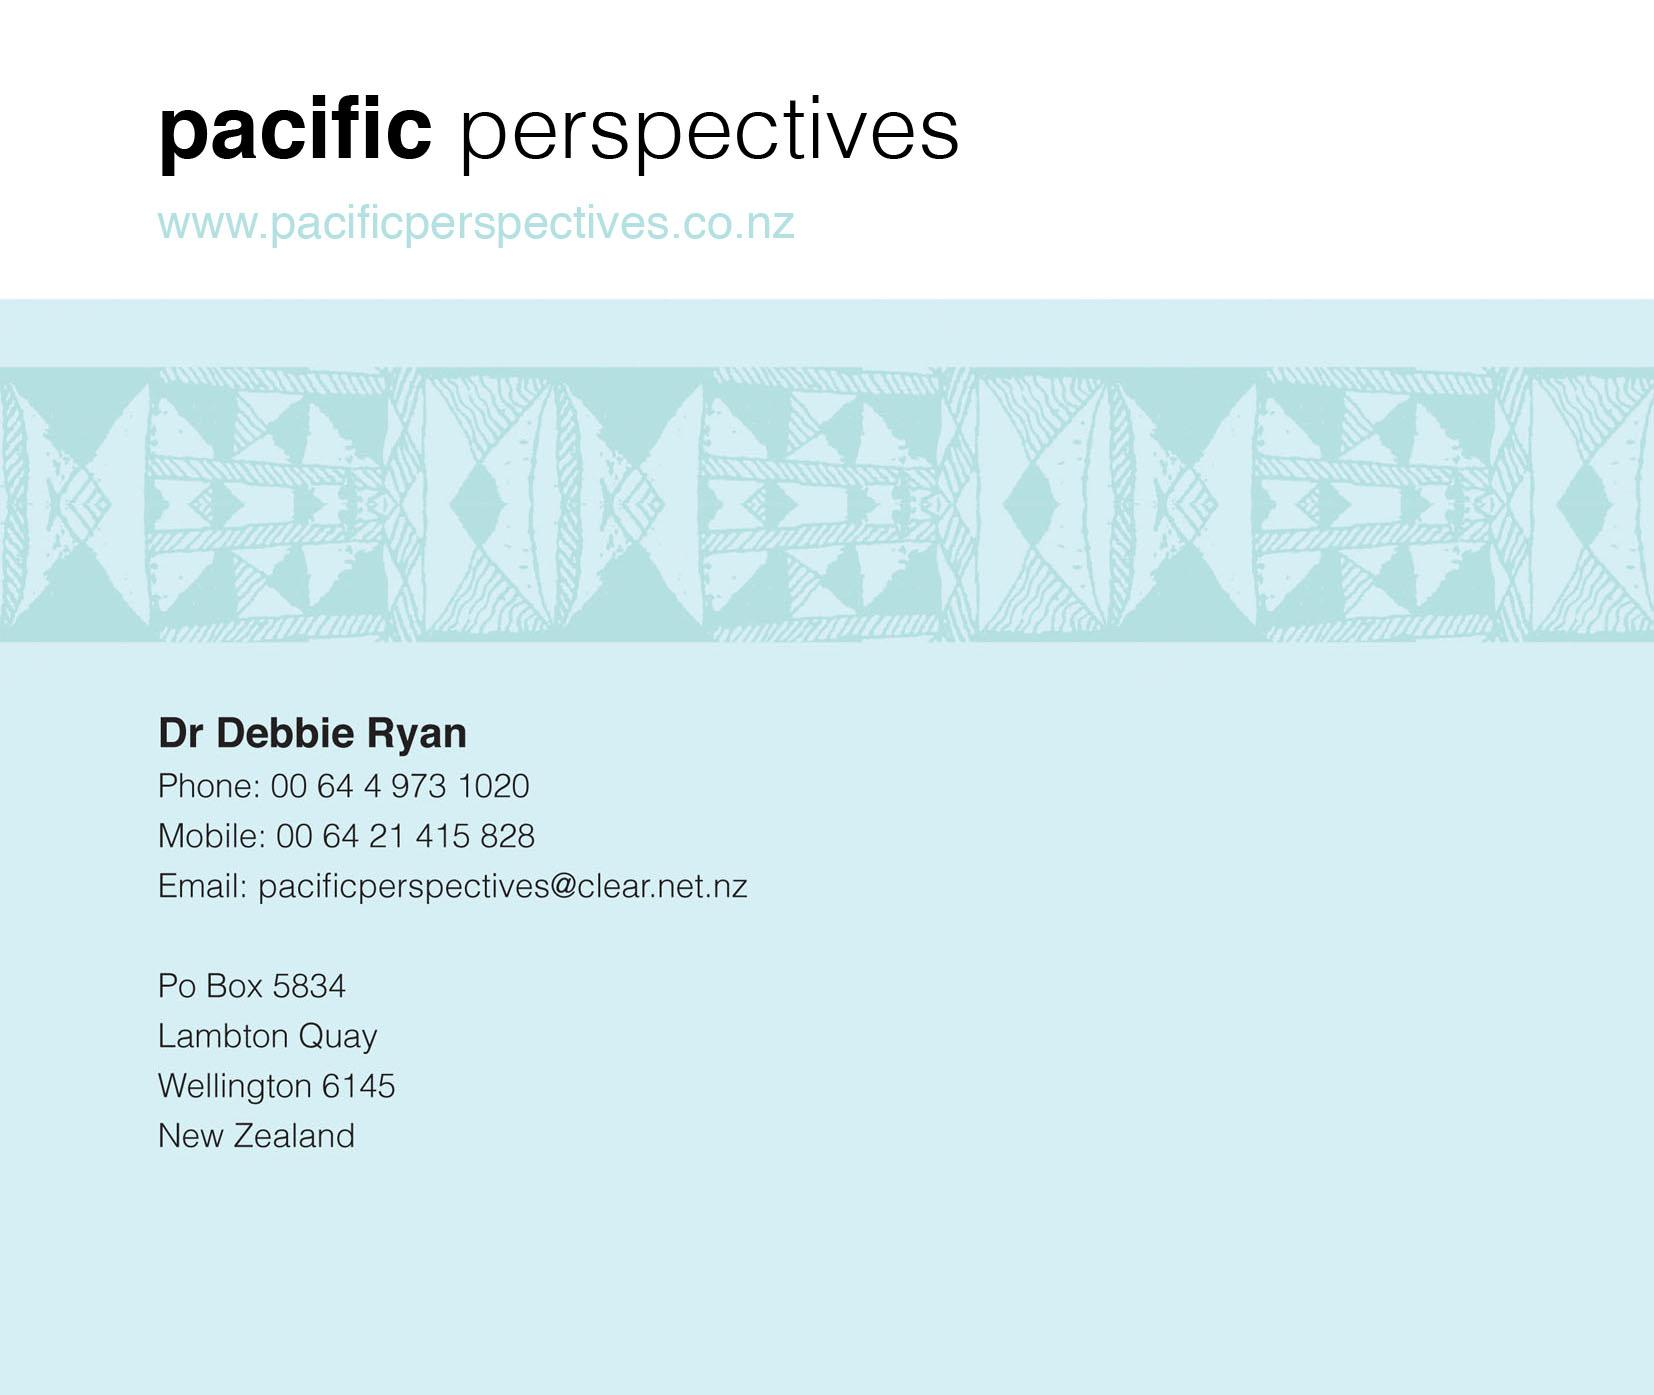 Primary Care for Pacific People: A Pacific and Health Systems approach Report to the Health